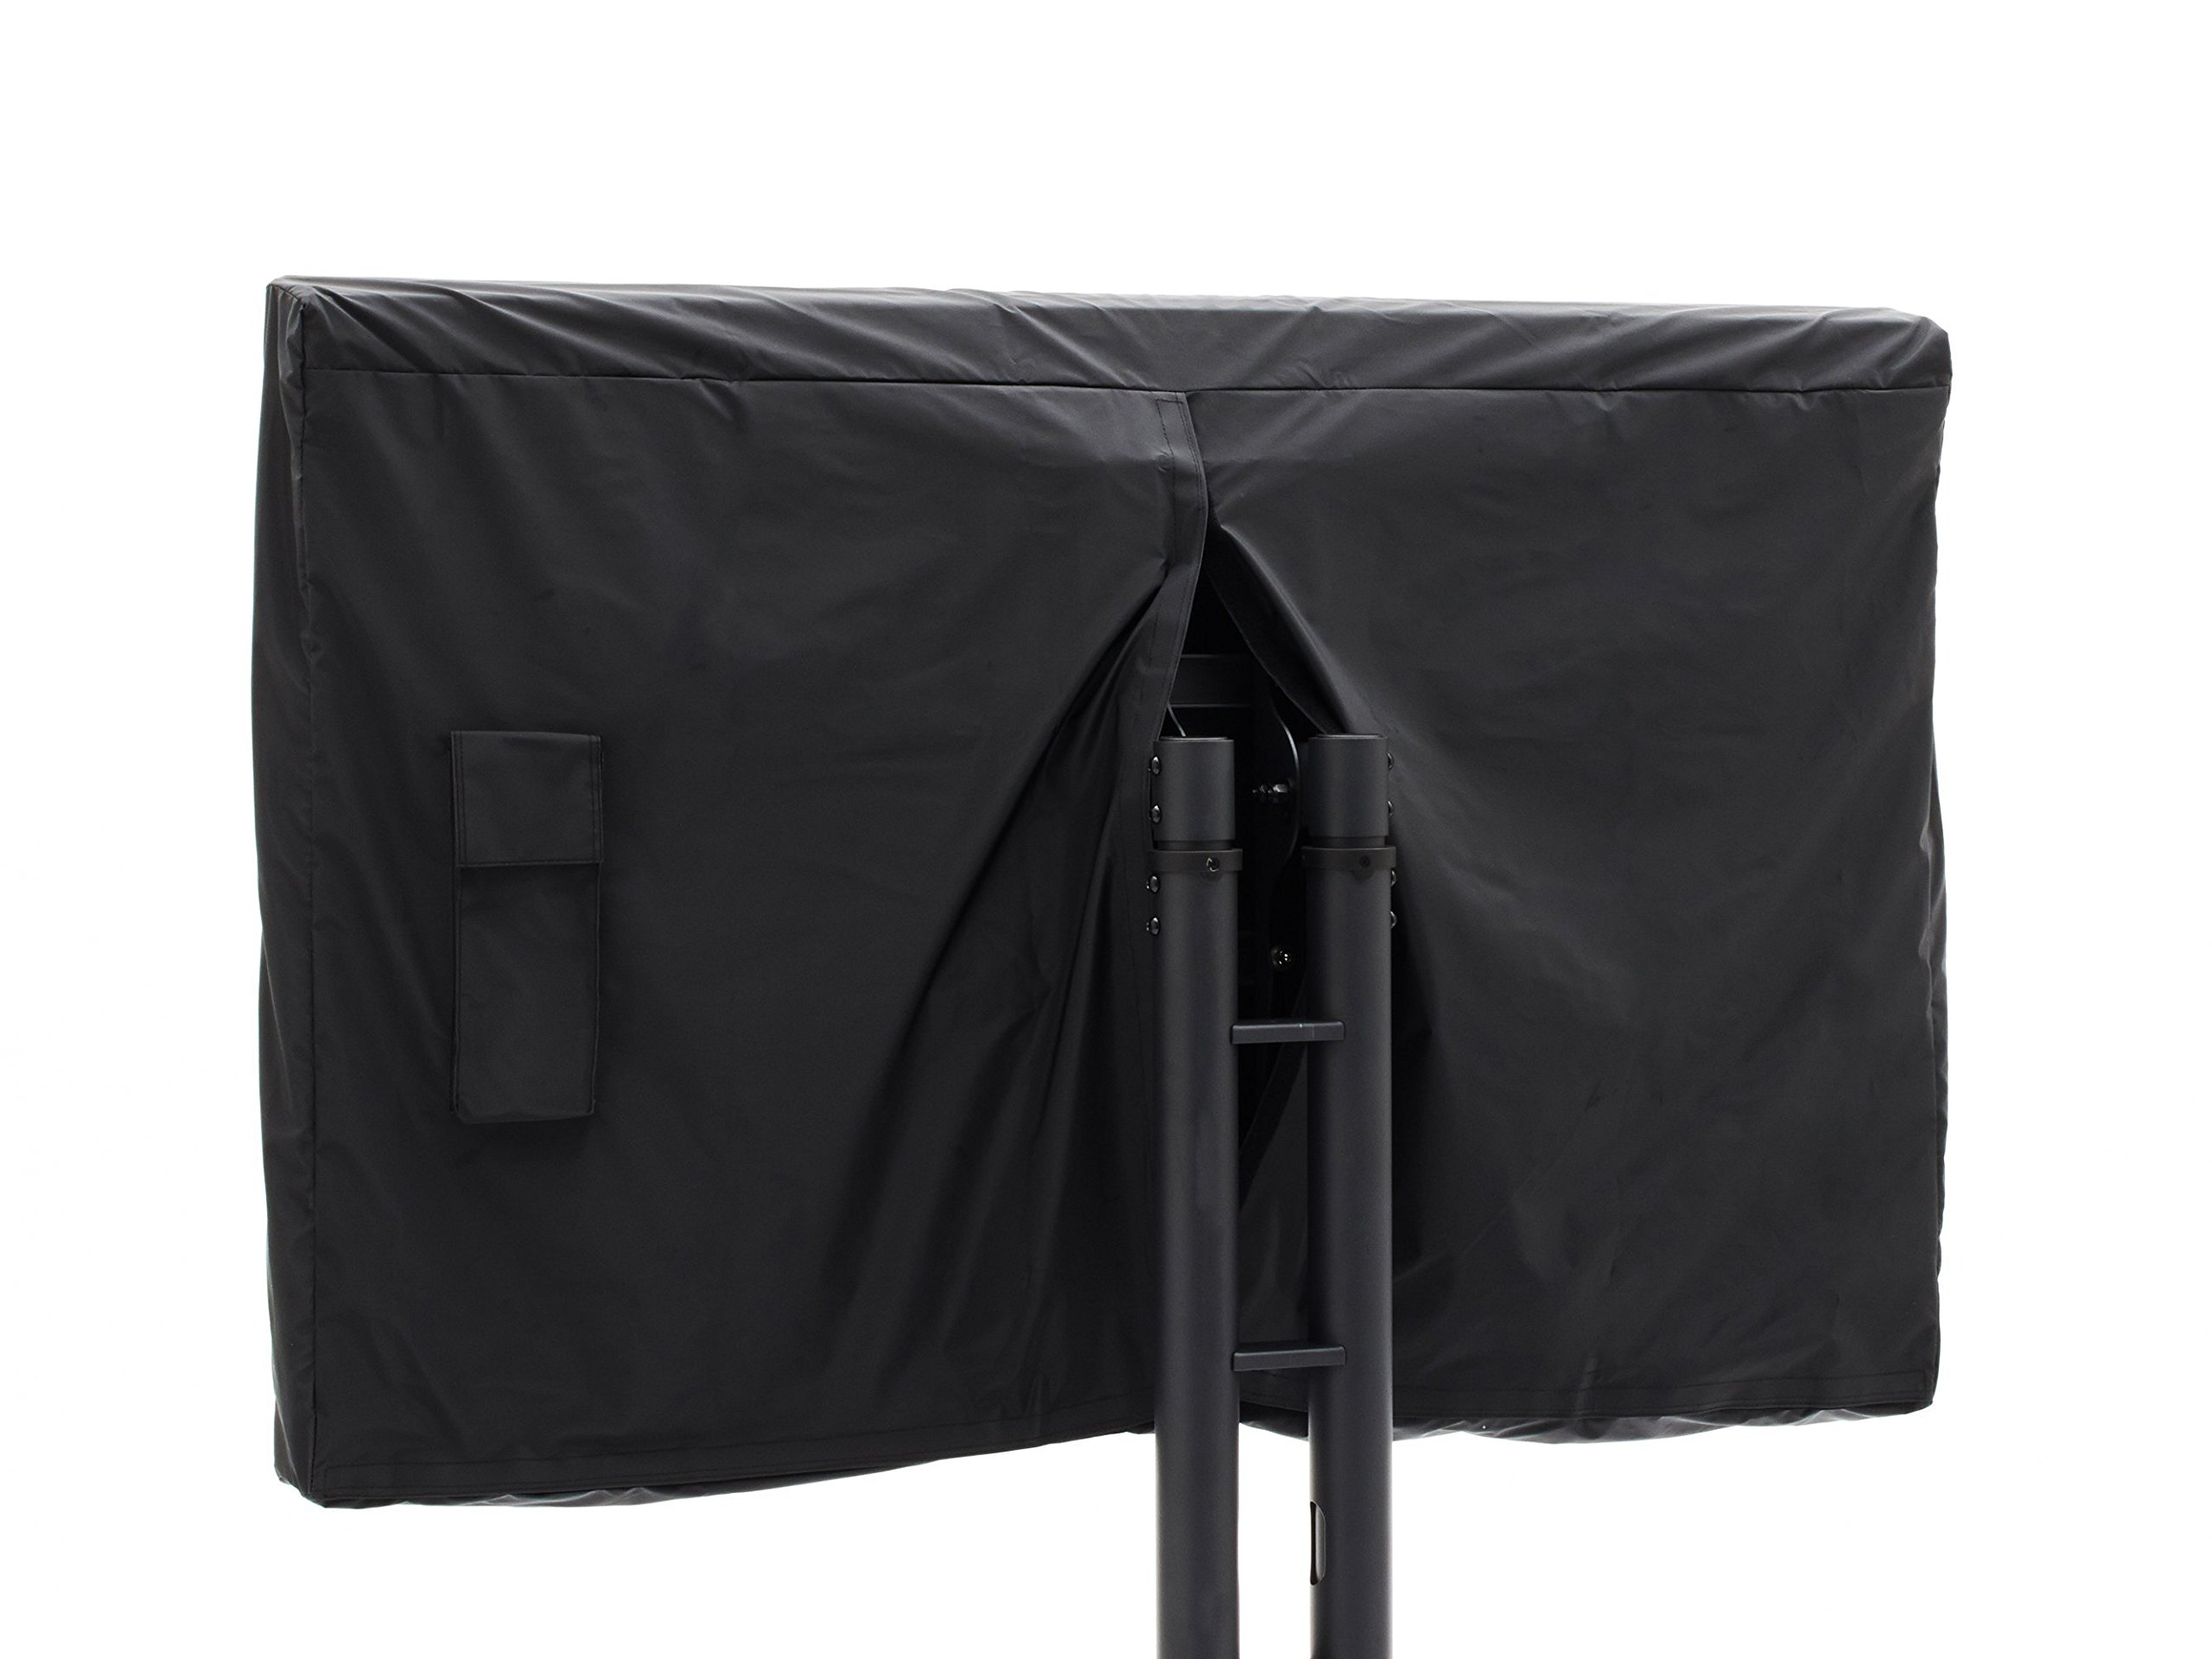 CoverMates - Outdoor TV Cover - Fits 55 to 59 Inch TV's - Classic - 12-Gauge Vinyl With Polyester Backing - Full Coverage - Bottom And Back Velcro Closures - 2 Year Warranty - Water Resistant - Black